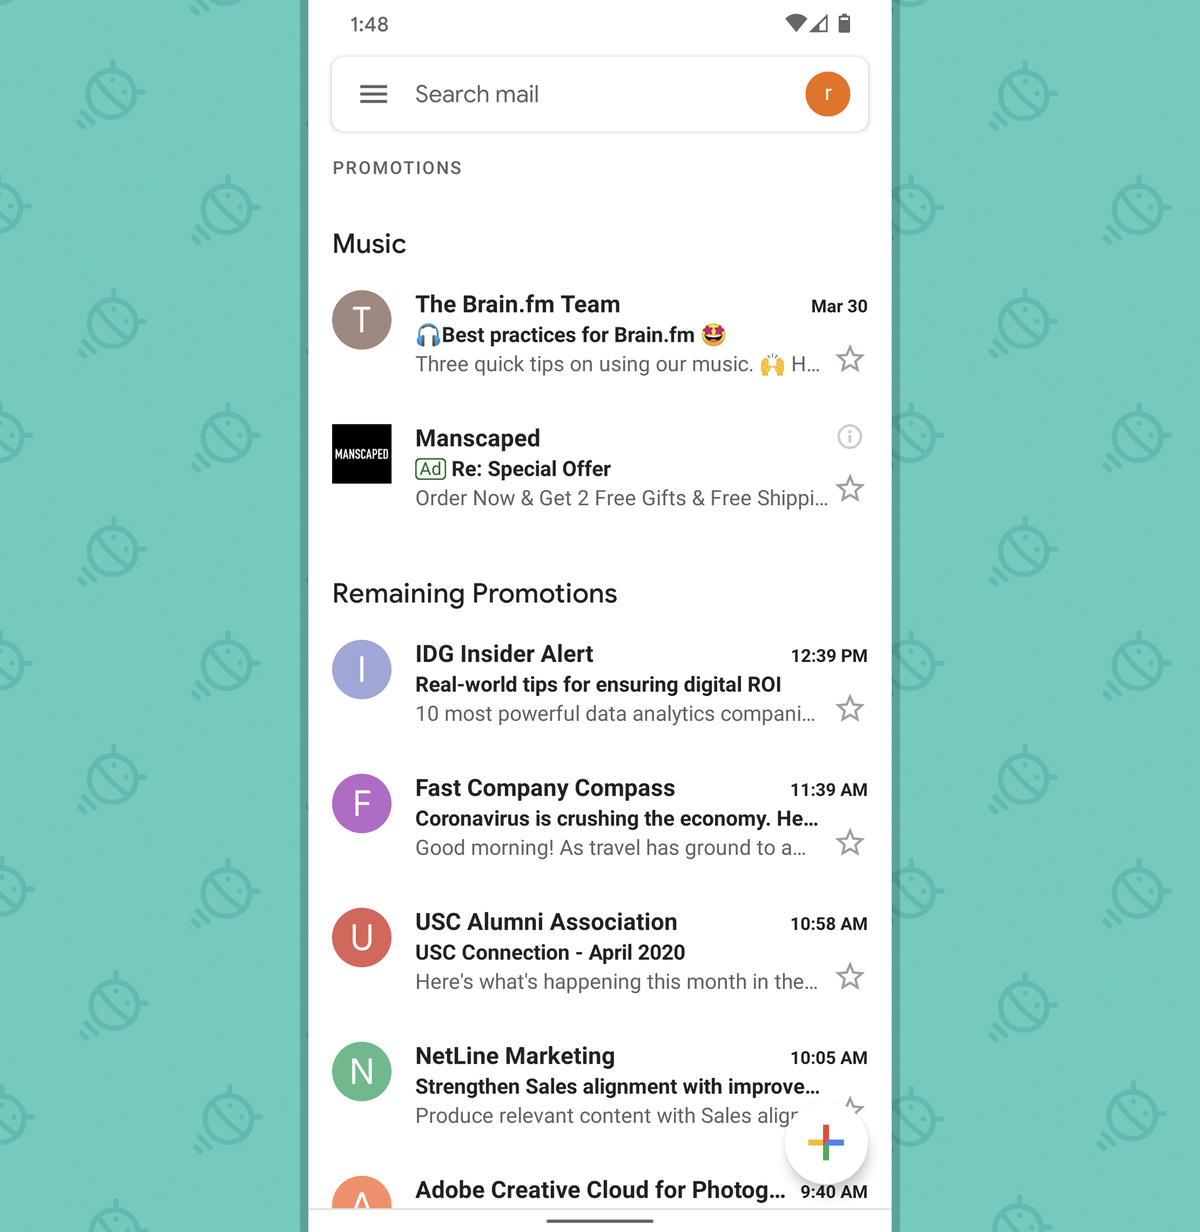 Gmail Android App: Promotions